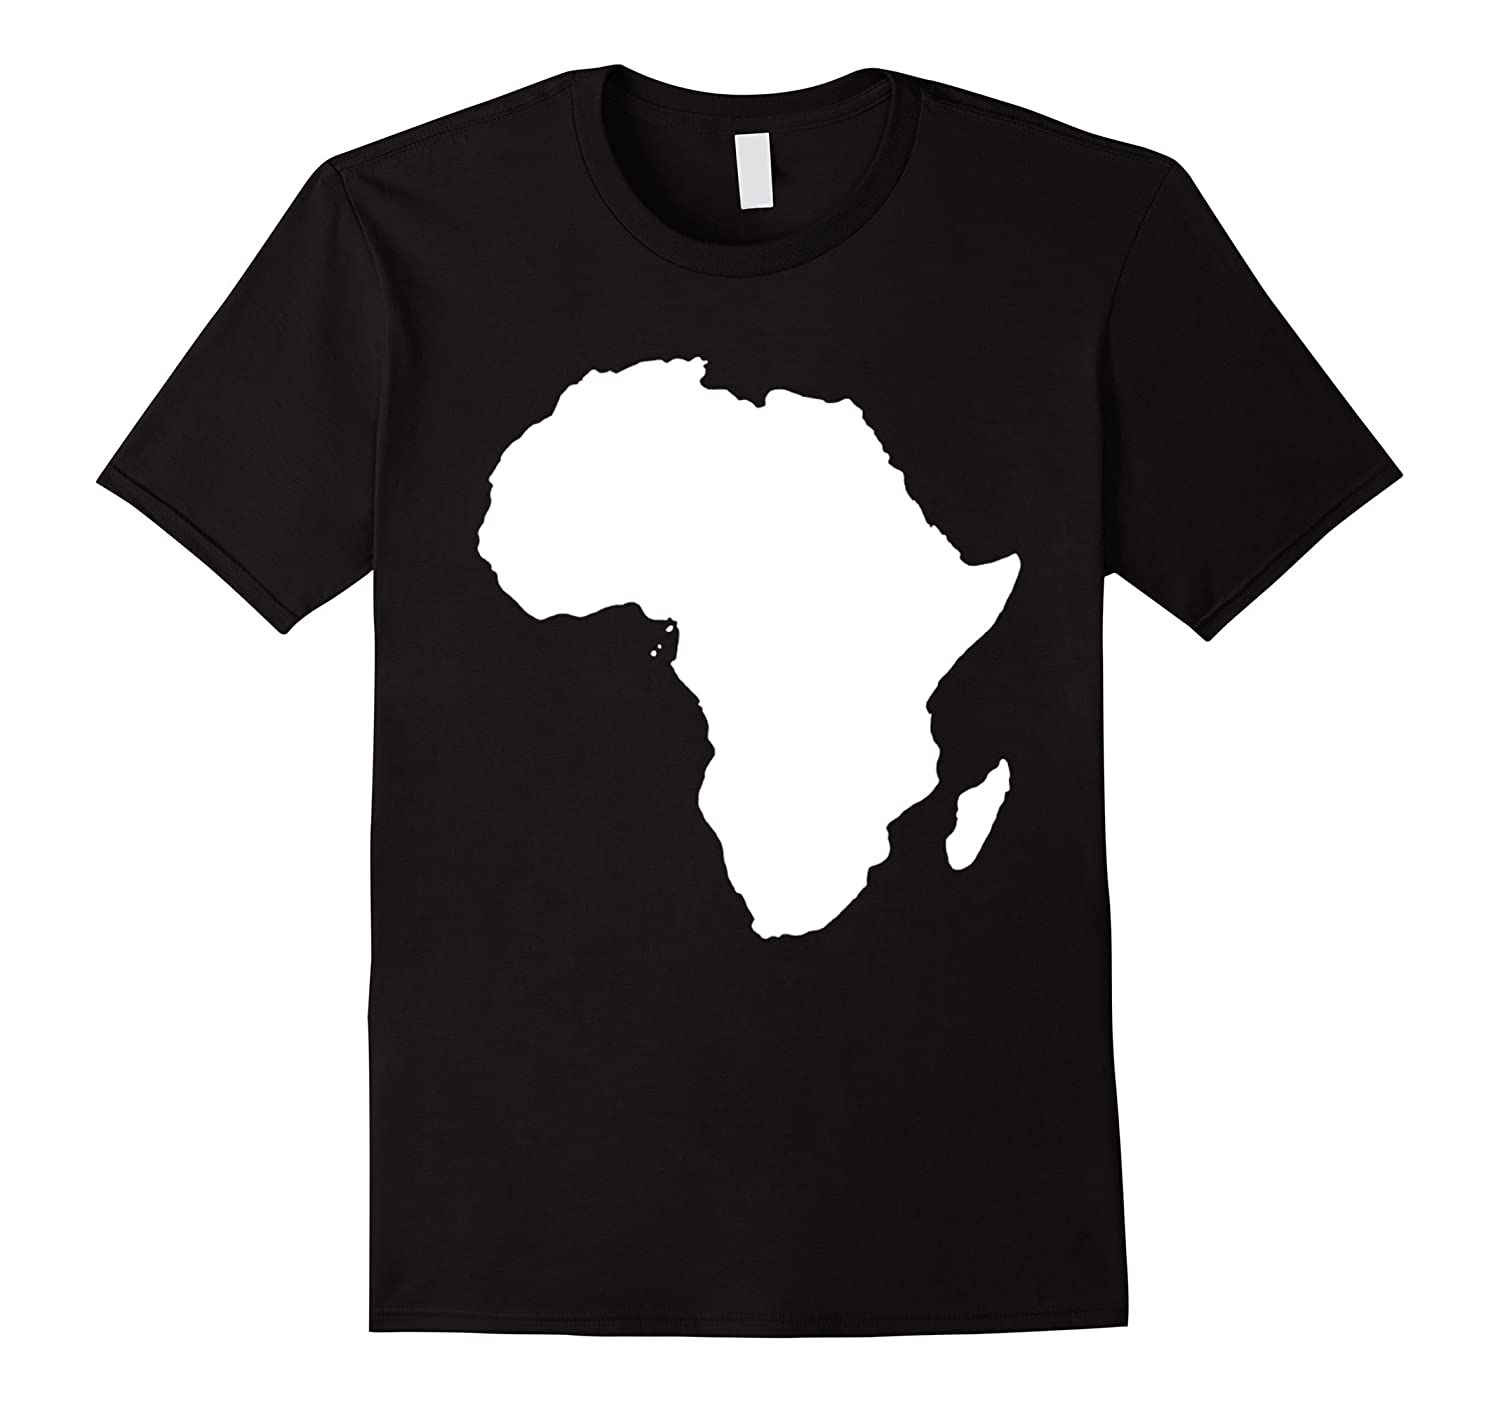 AFRICA - AFRICAN PRIDE MOTHERLAND BLACK POWER PANTHERS SHIRT-ah my shirt one gift